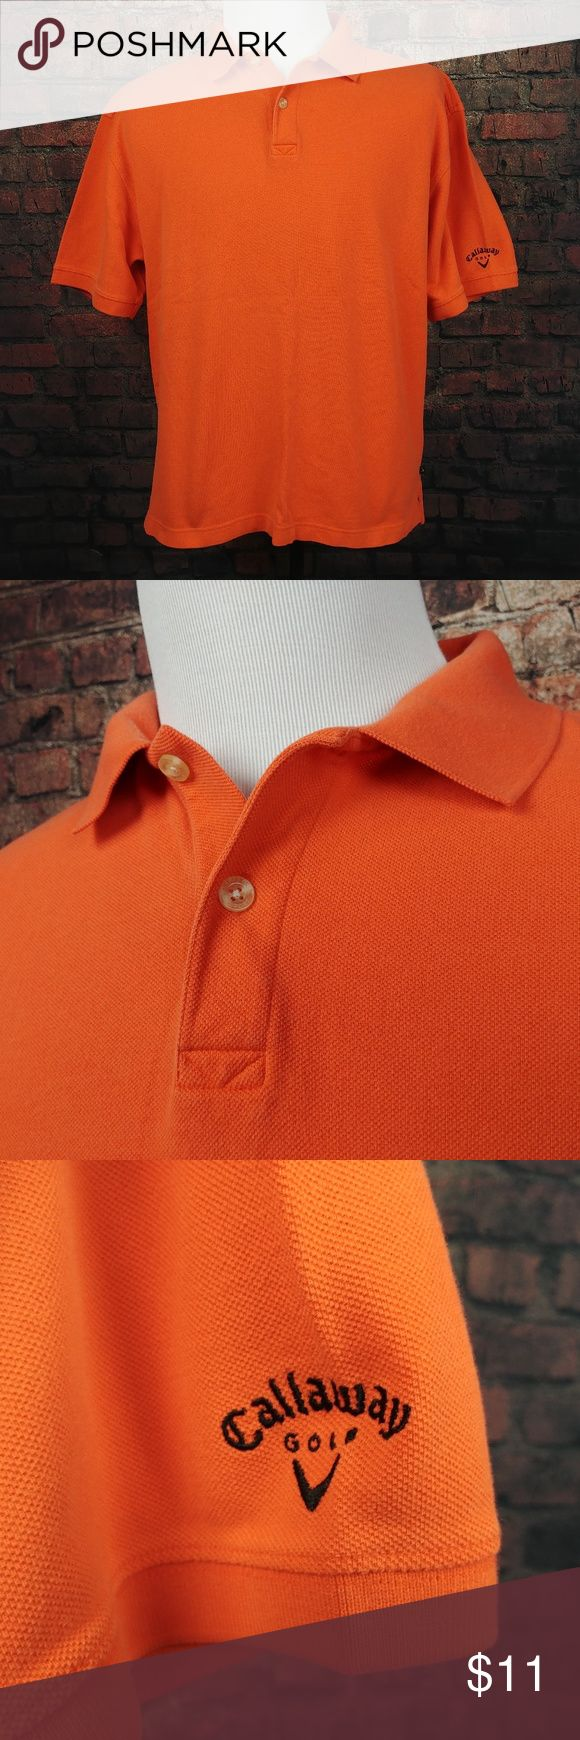 """Callaway Golf Sport Polo Shirt Mens Large Orange Callaway Golf Sport Polo Shirt Mens Large Orange Collared Rugby Adult SS Solid  C18:16:W08-18:P  Very Good Condition! No Rips or Holes. (See Photos).  Item Dimensions (Approximately):      24.5"""" - Pit to Pit     27"""" - Shirt Length (Front Side)  Questions? Please ask, I try to respond immediately!   I ship daily to get you your item ASAP!   Just a common guy bringing you great deals, superb customer service is my goal.  -Cooper @ CoopsThrifts…"""